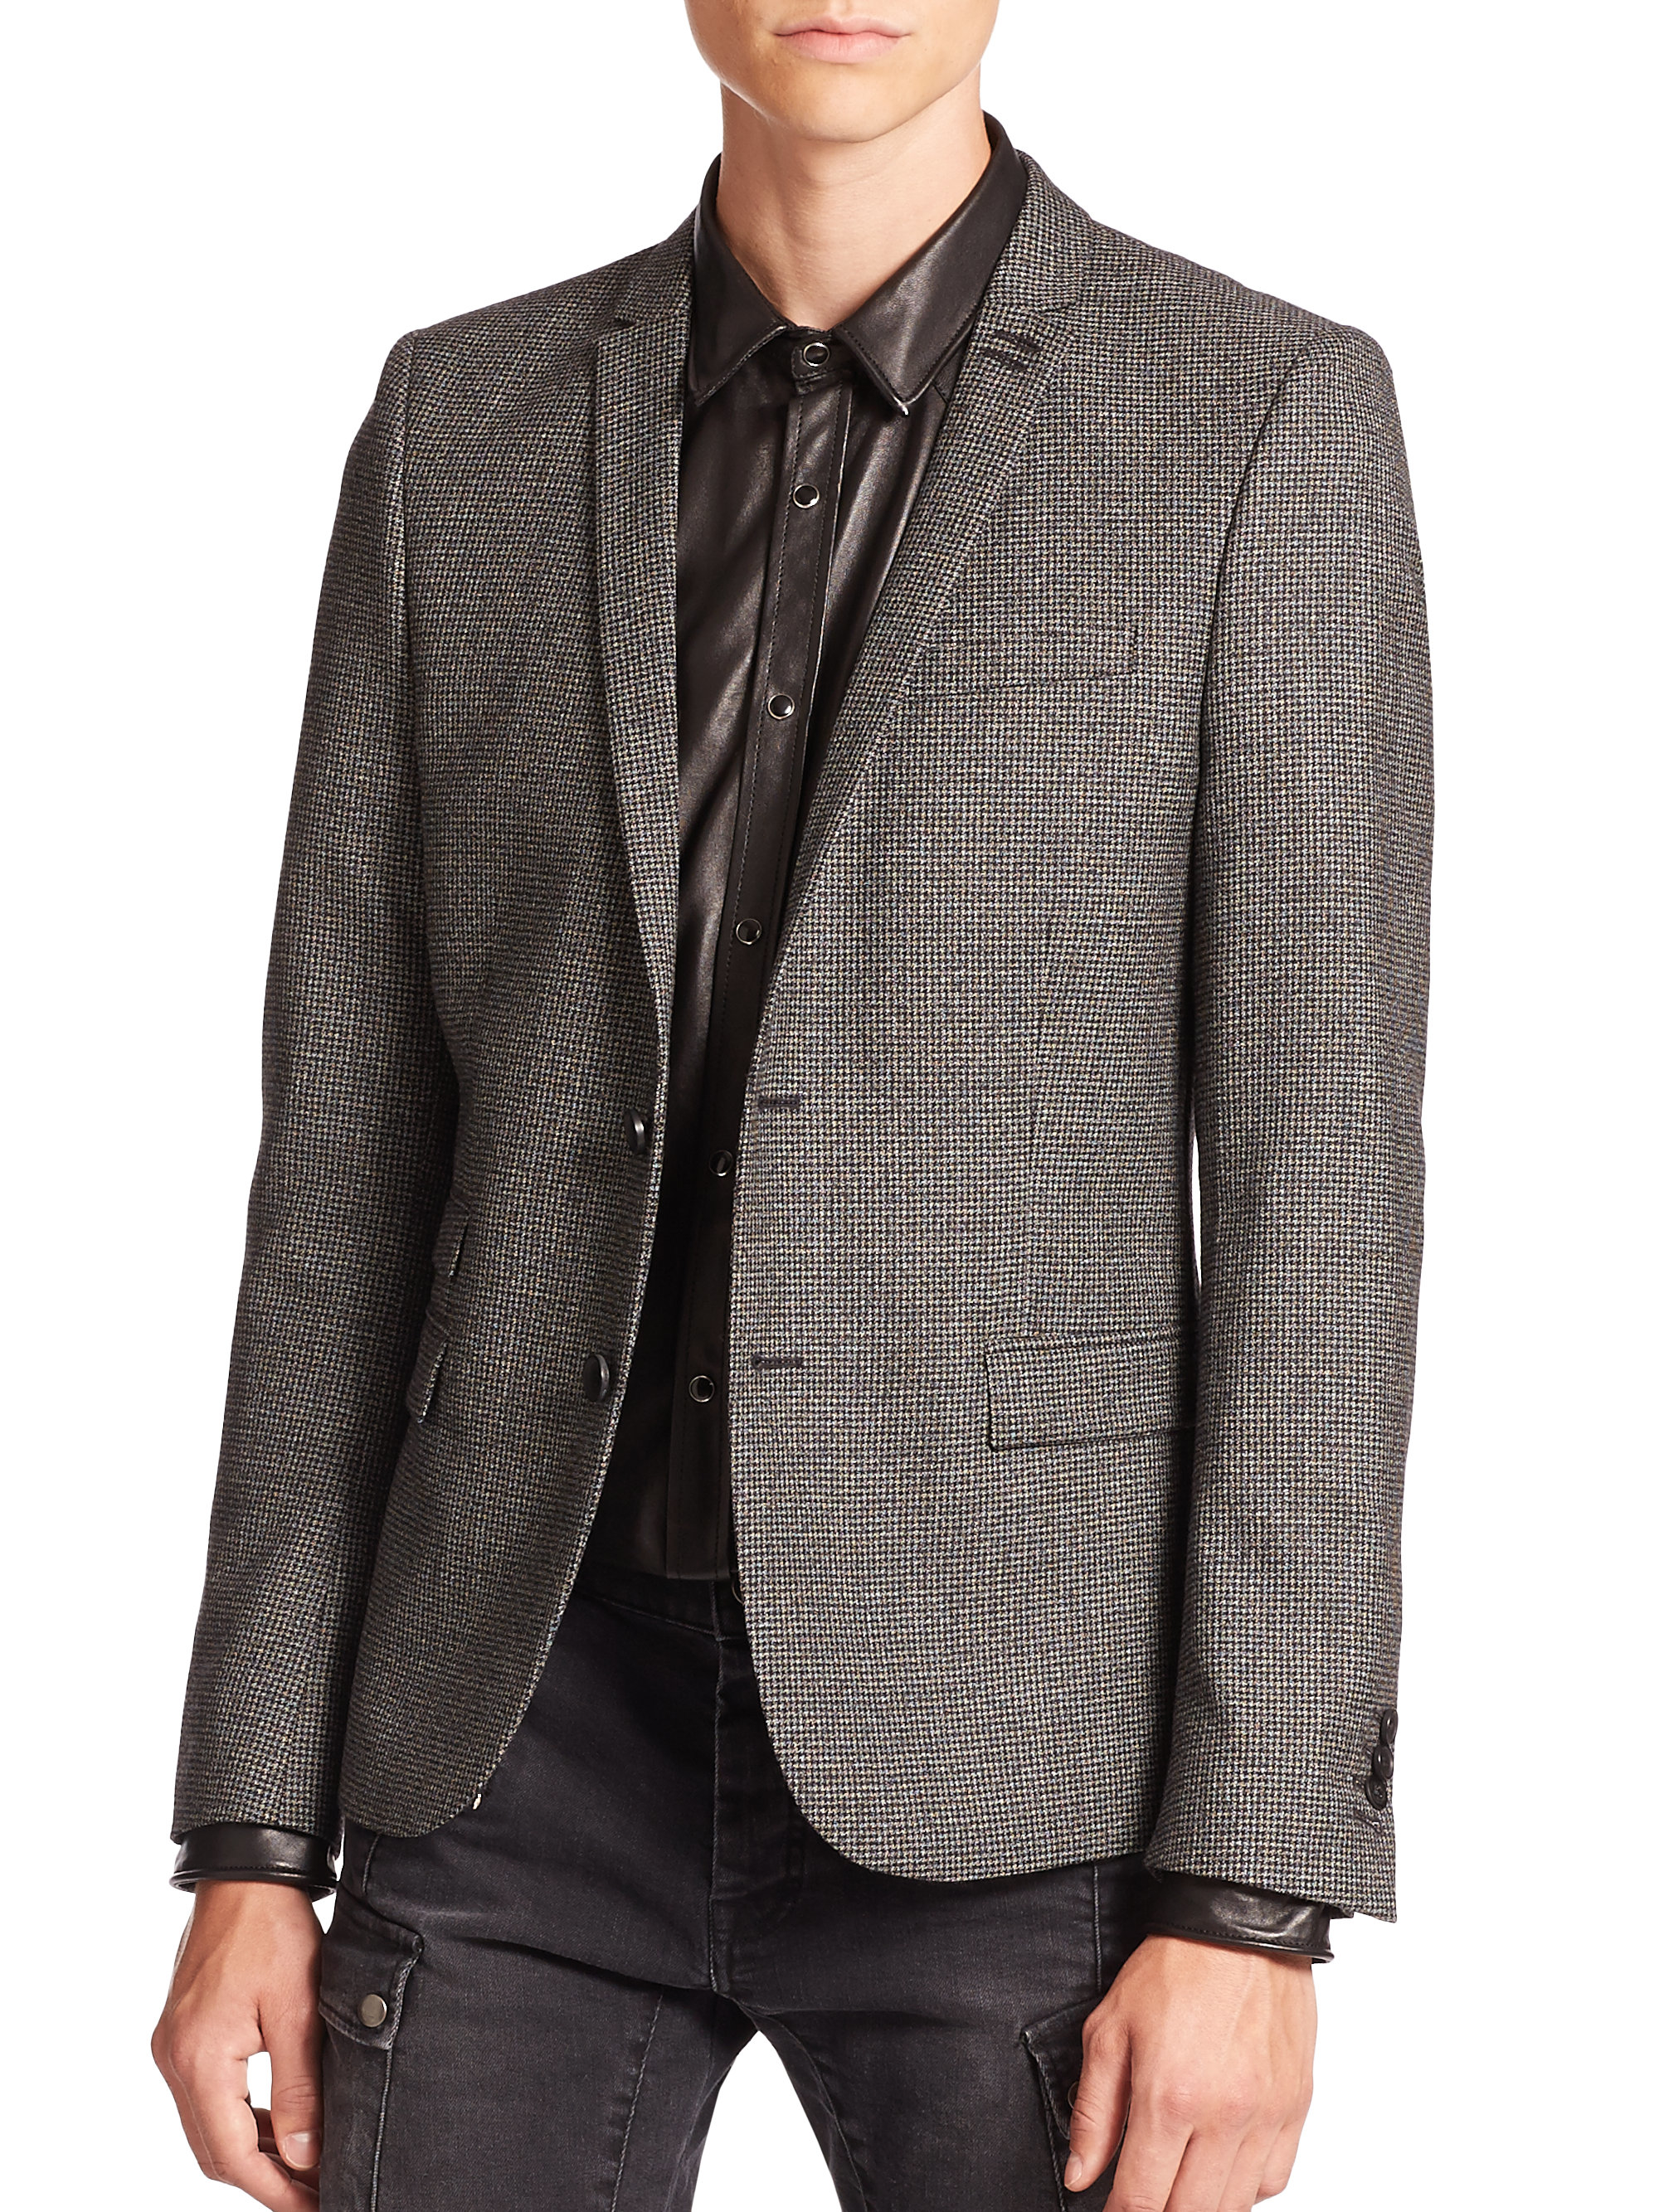 Lyst Kooples For In Wool Men The Houndstooth Gray Jacket r4wrx